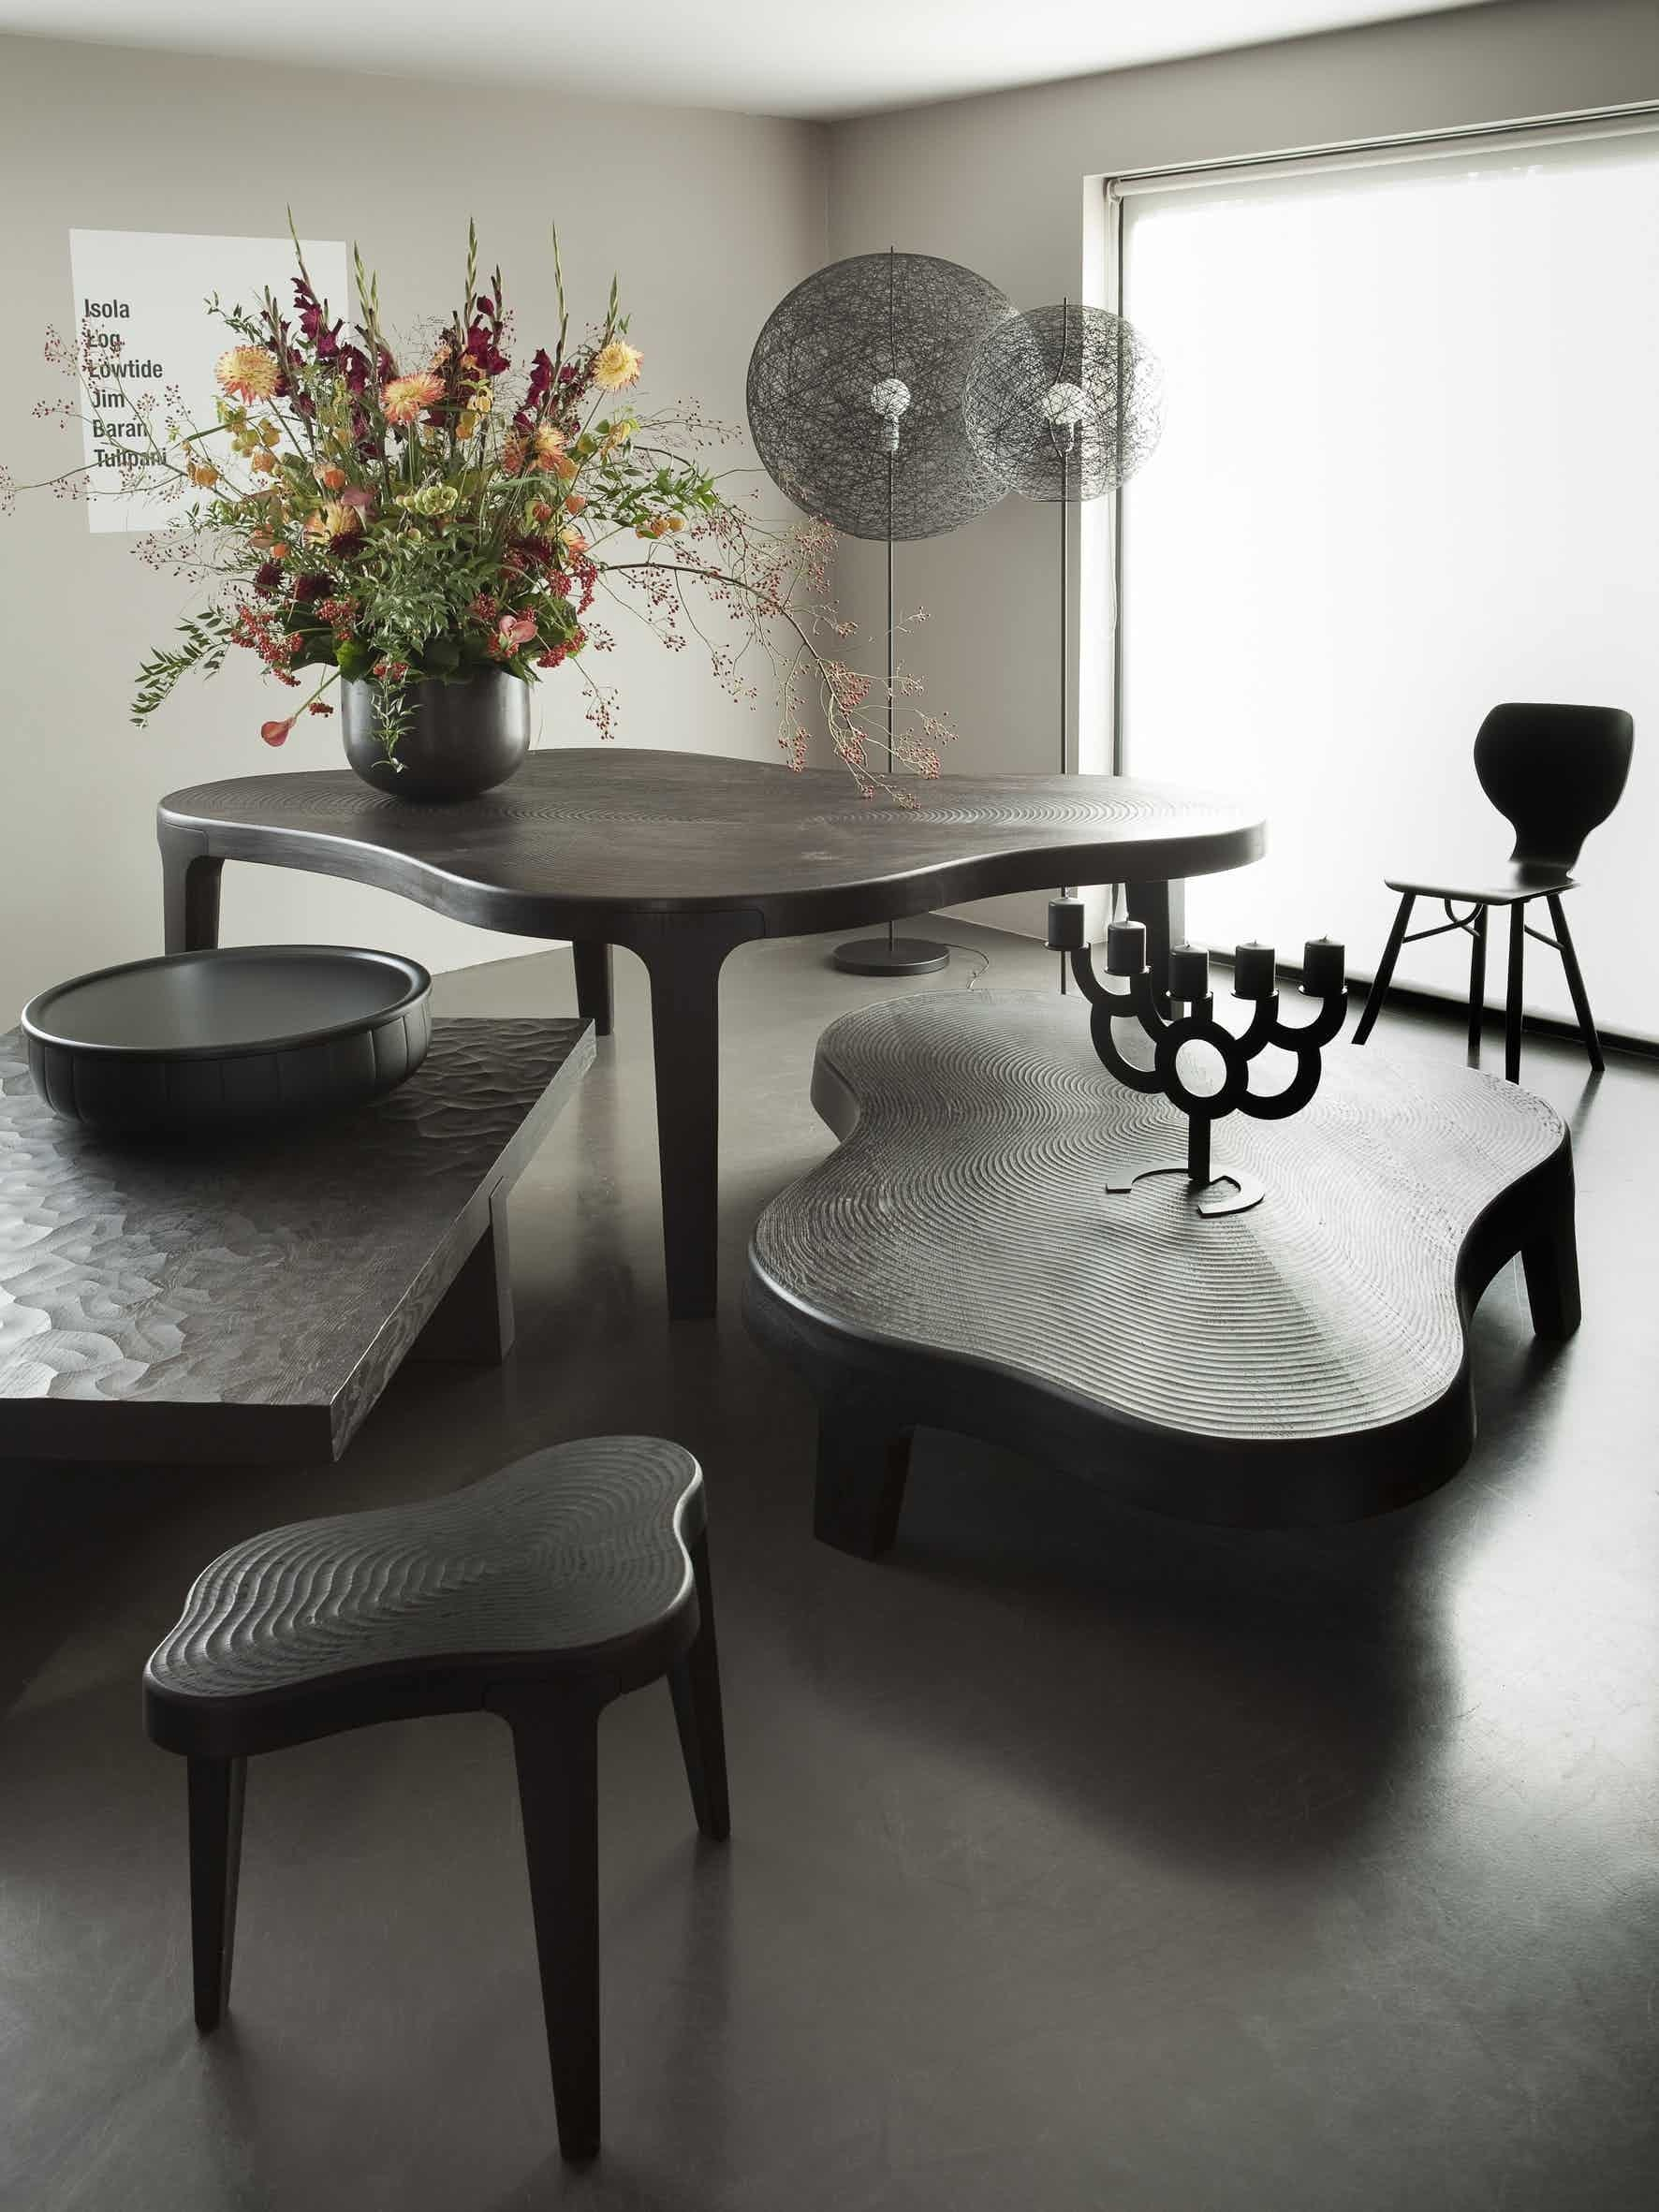 Isola-coffee-table-by-linteloo-available-at-haute-living